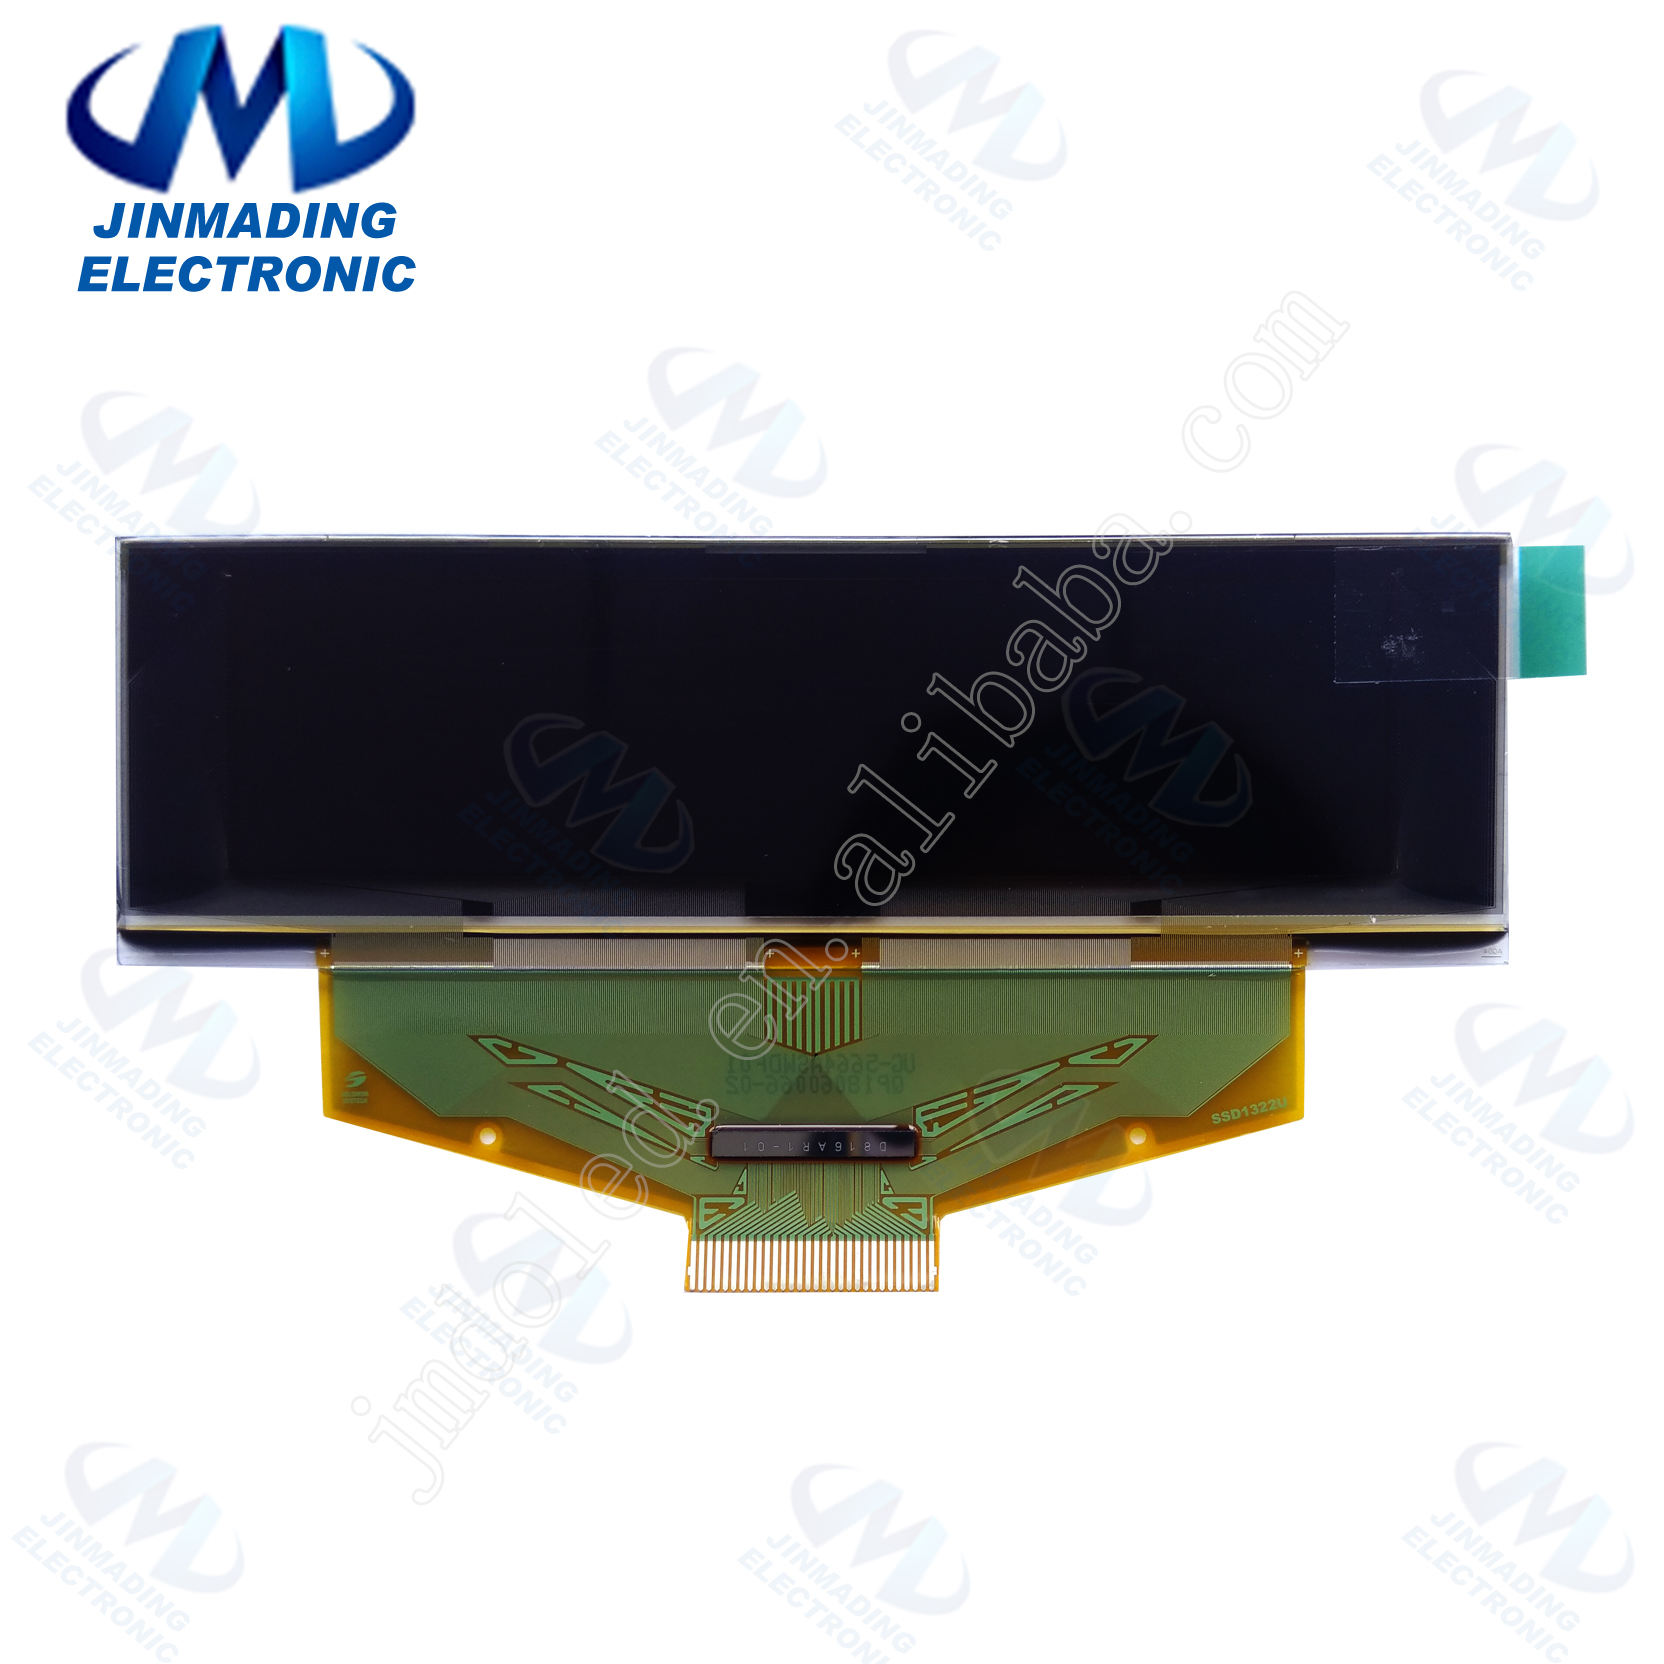 JMD 2.8 inch 256*64 SPI White OLED LCD Screen 8Bit Parallel Interface SSD1322 Drive IC OLED TV